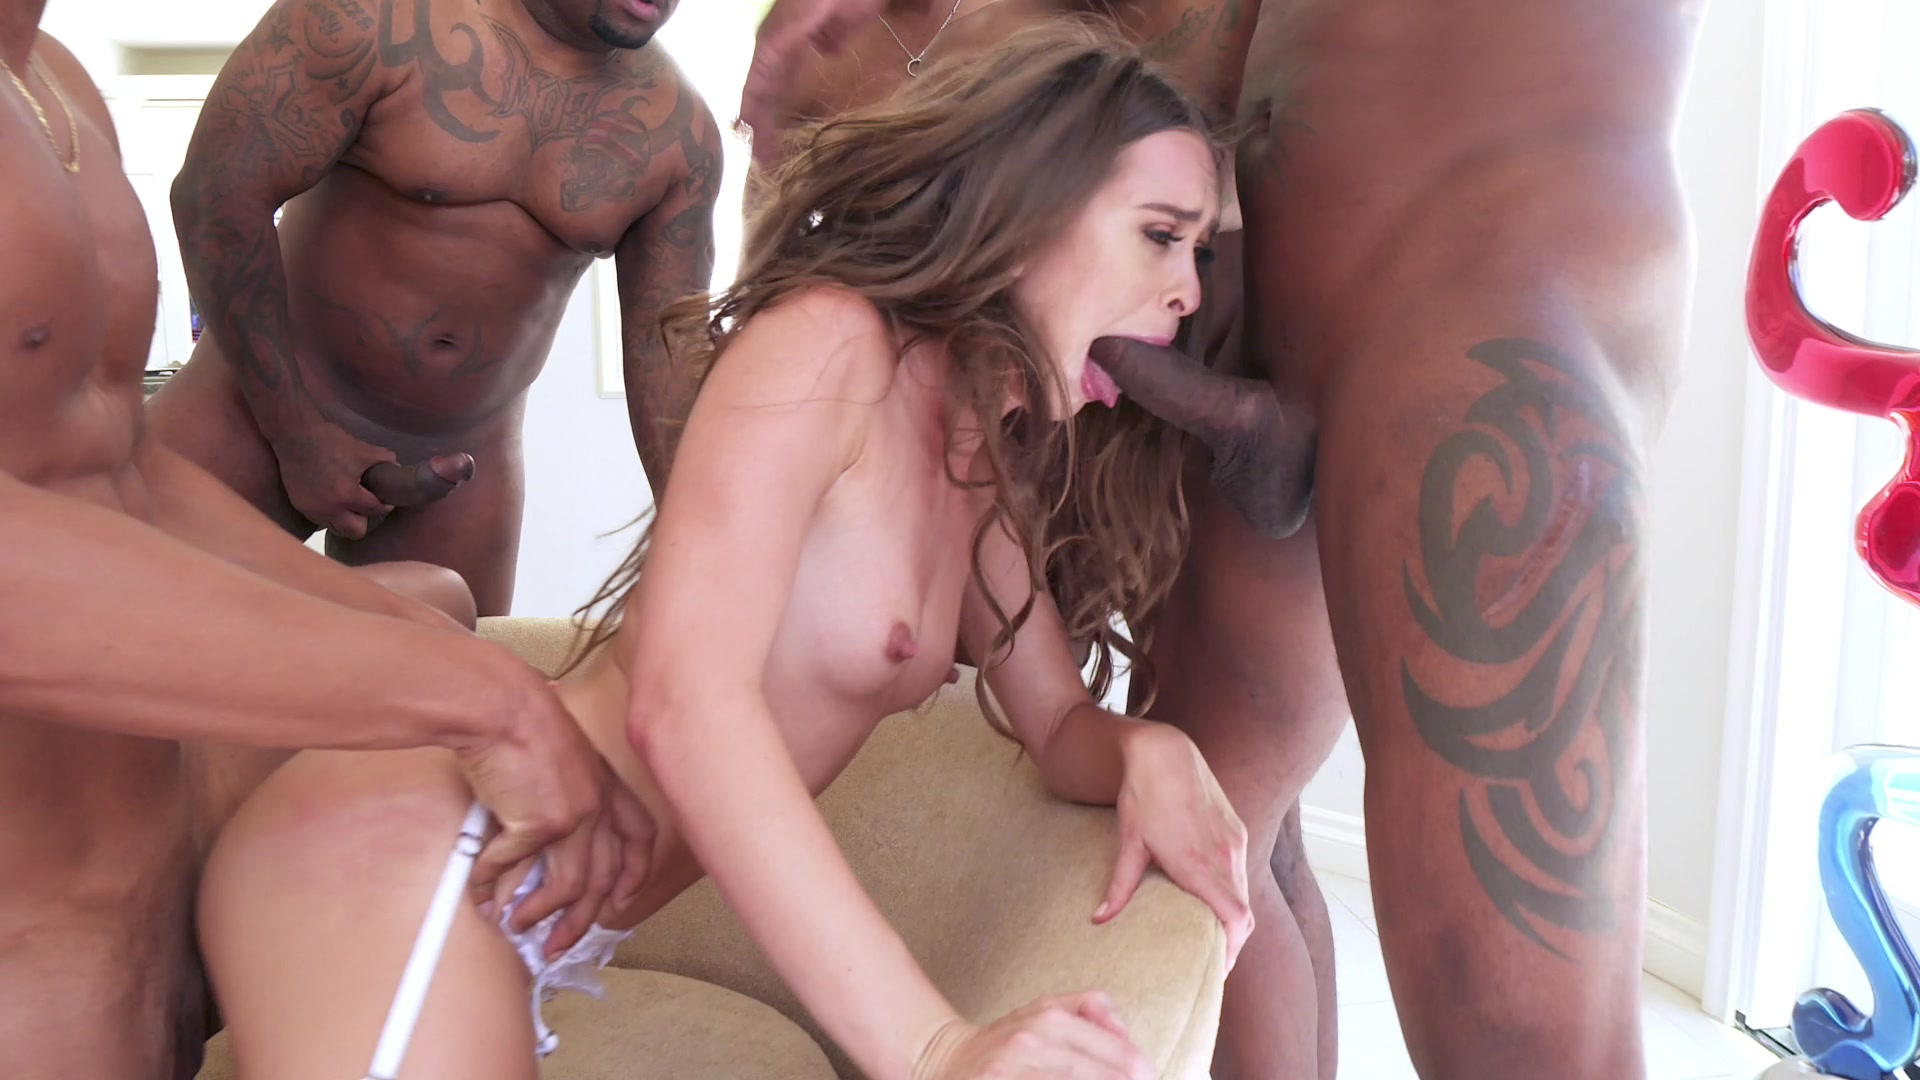 Consider, what spectacular gang bang videos this brilliant